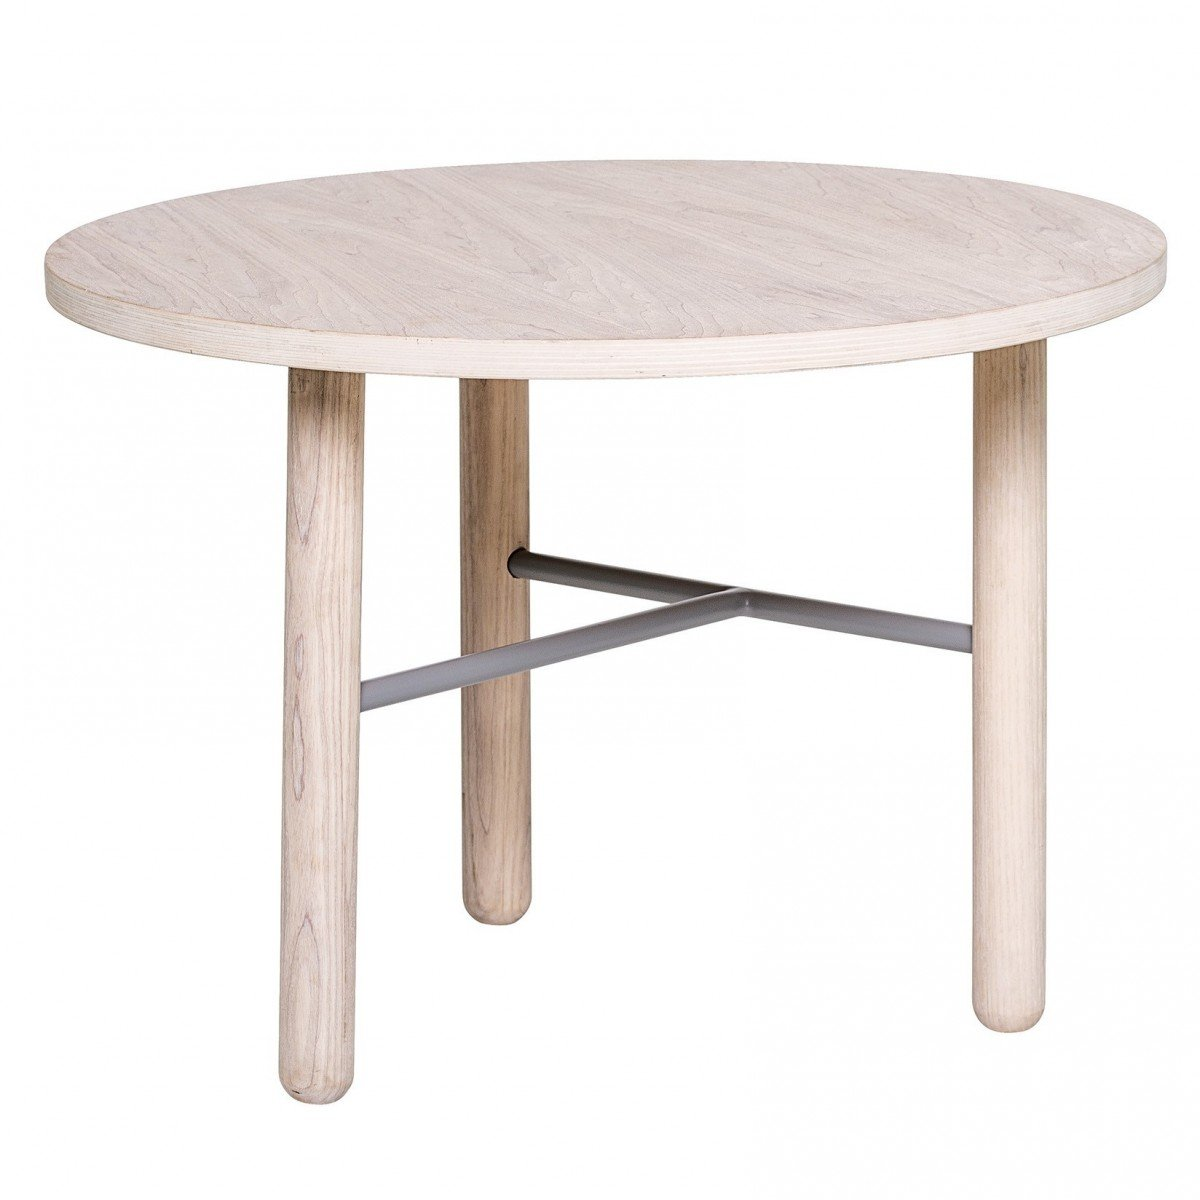 Table Basse Chene Table Basse Chêne Bloomingville